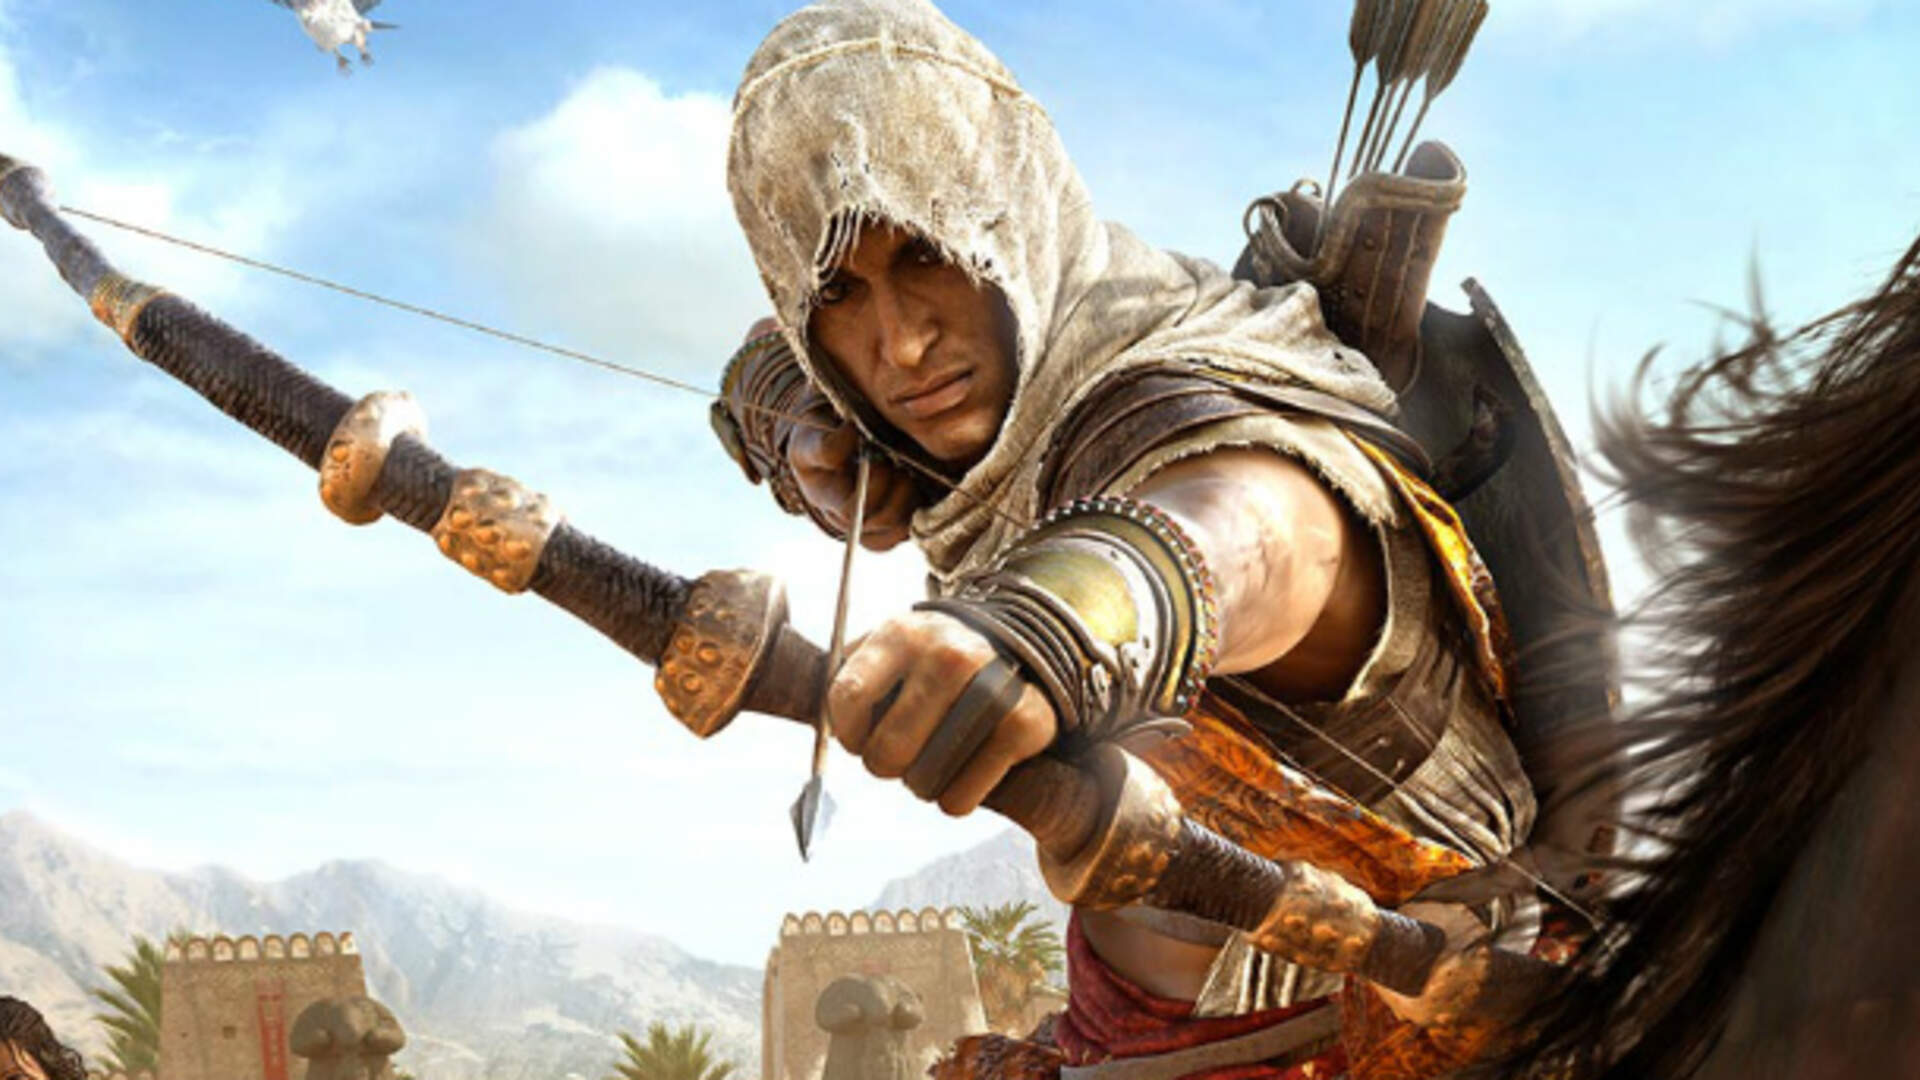 Assassin S Creed Origins Bayek And Aya Could Return On Tv Or Film Usgamer